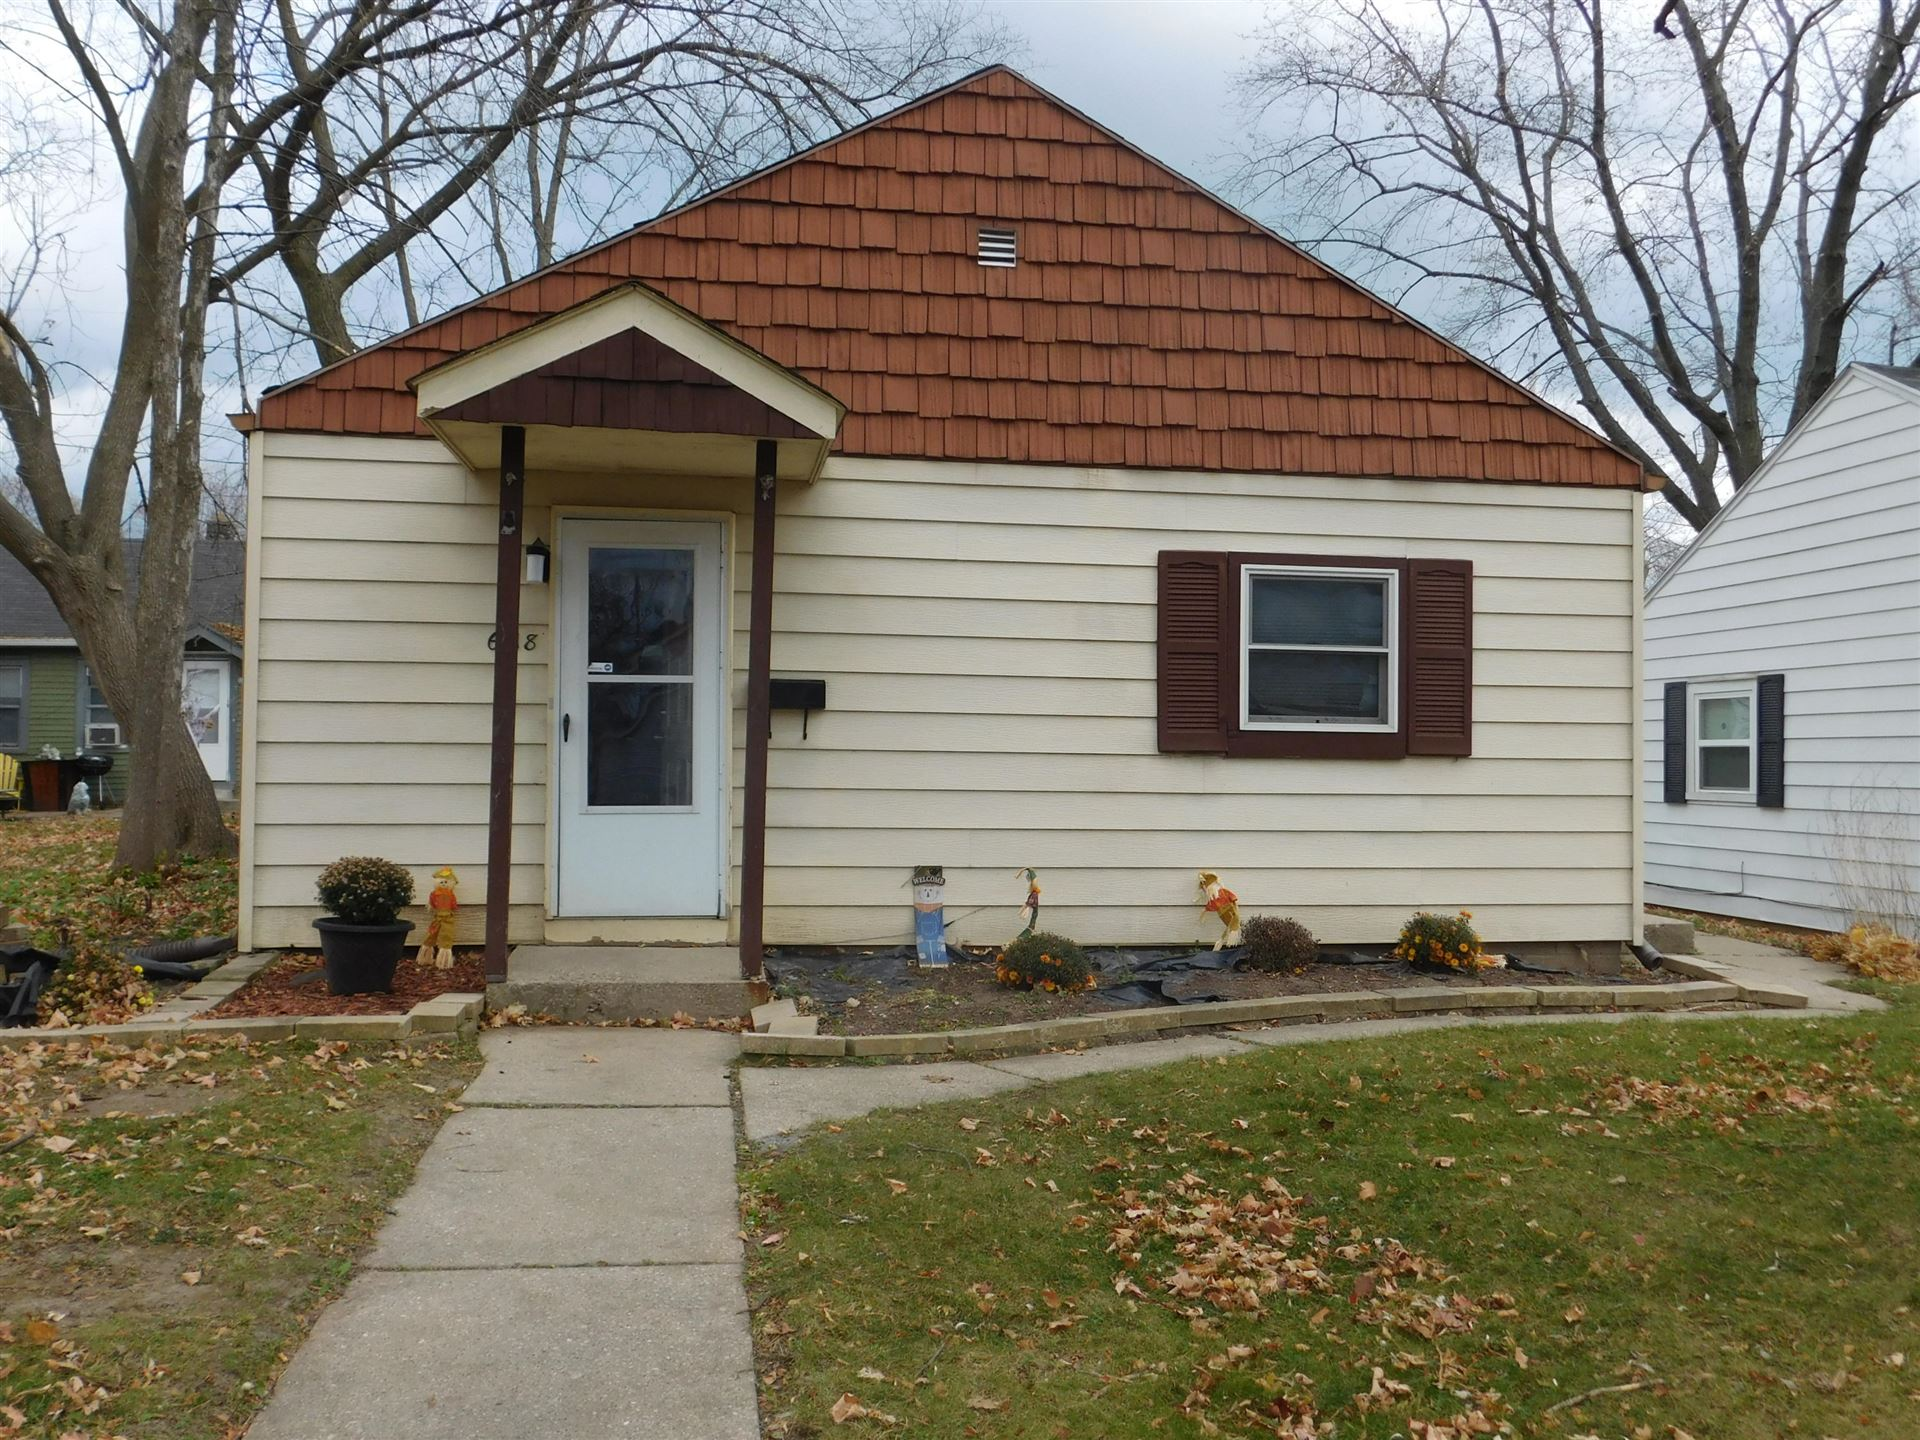 6118 N 37th St, Milwaukee, WI 53209 - #: 1718476